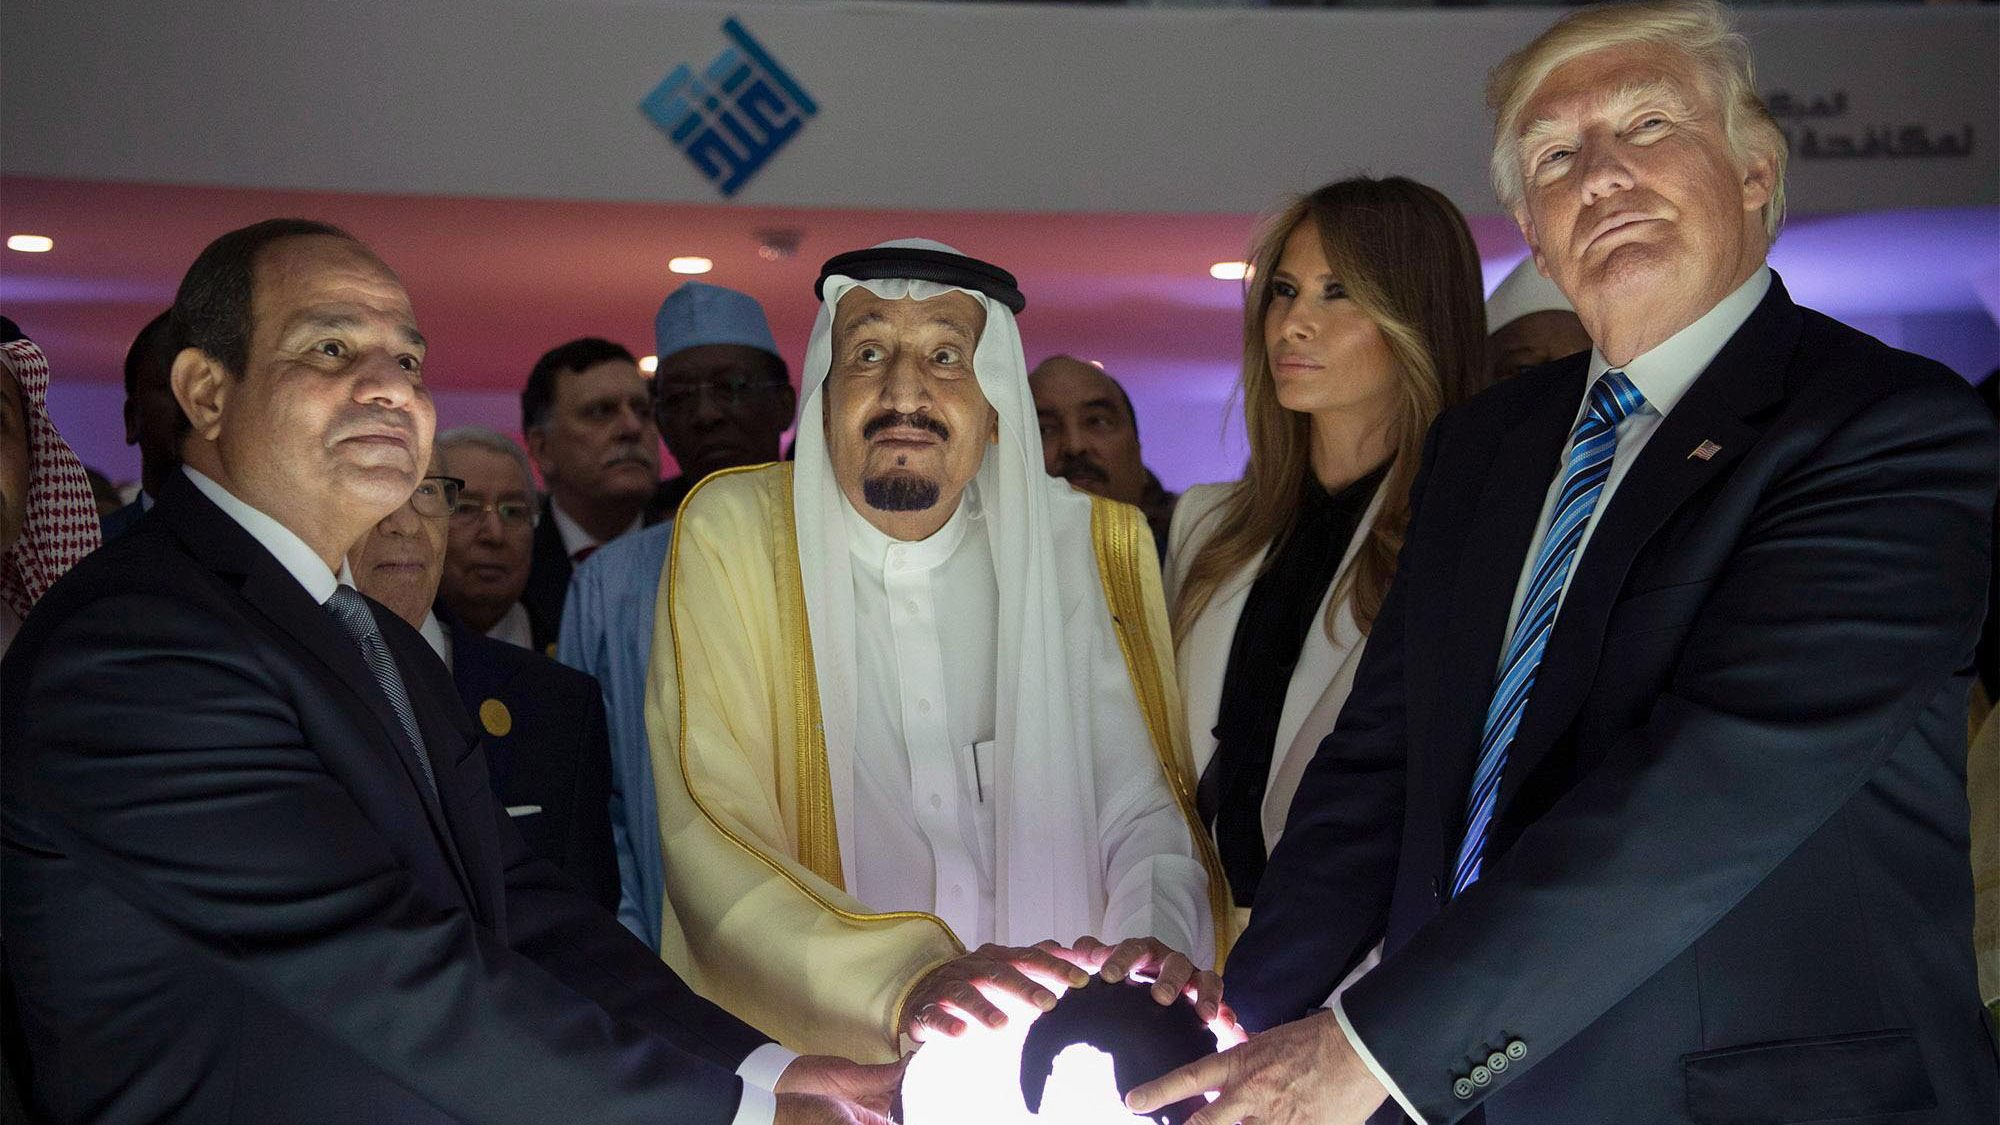 A handout photo made available by the Saudi Press Agency (SPA) shows US President Donald J. Trump (R), US First Lady Melania Trump (R-2), King Salman bin Abdulaziz al-Saud of Saudi Arabia (C) and Egyptian President Abdel Fattah al-Sisi (L) opening the World Center for Countering Extremist Thought in Riyadh, Saudi Arabia, 21 May 2017. President Trump is in Ridayah to attend the Gulf Cooperation Council summit (GCC).